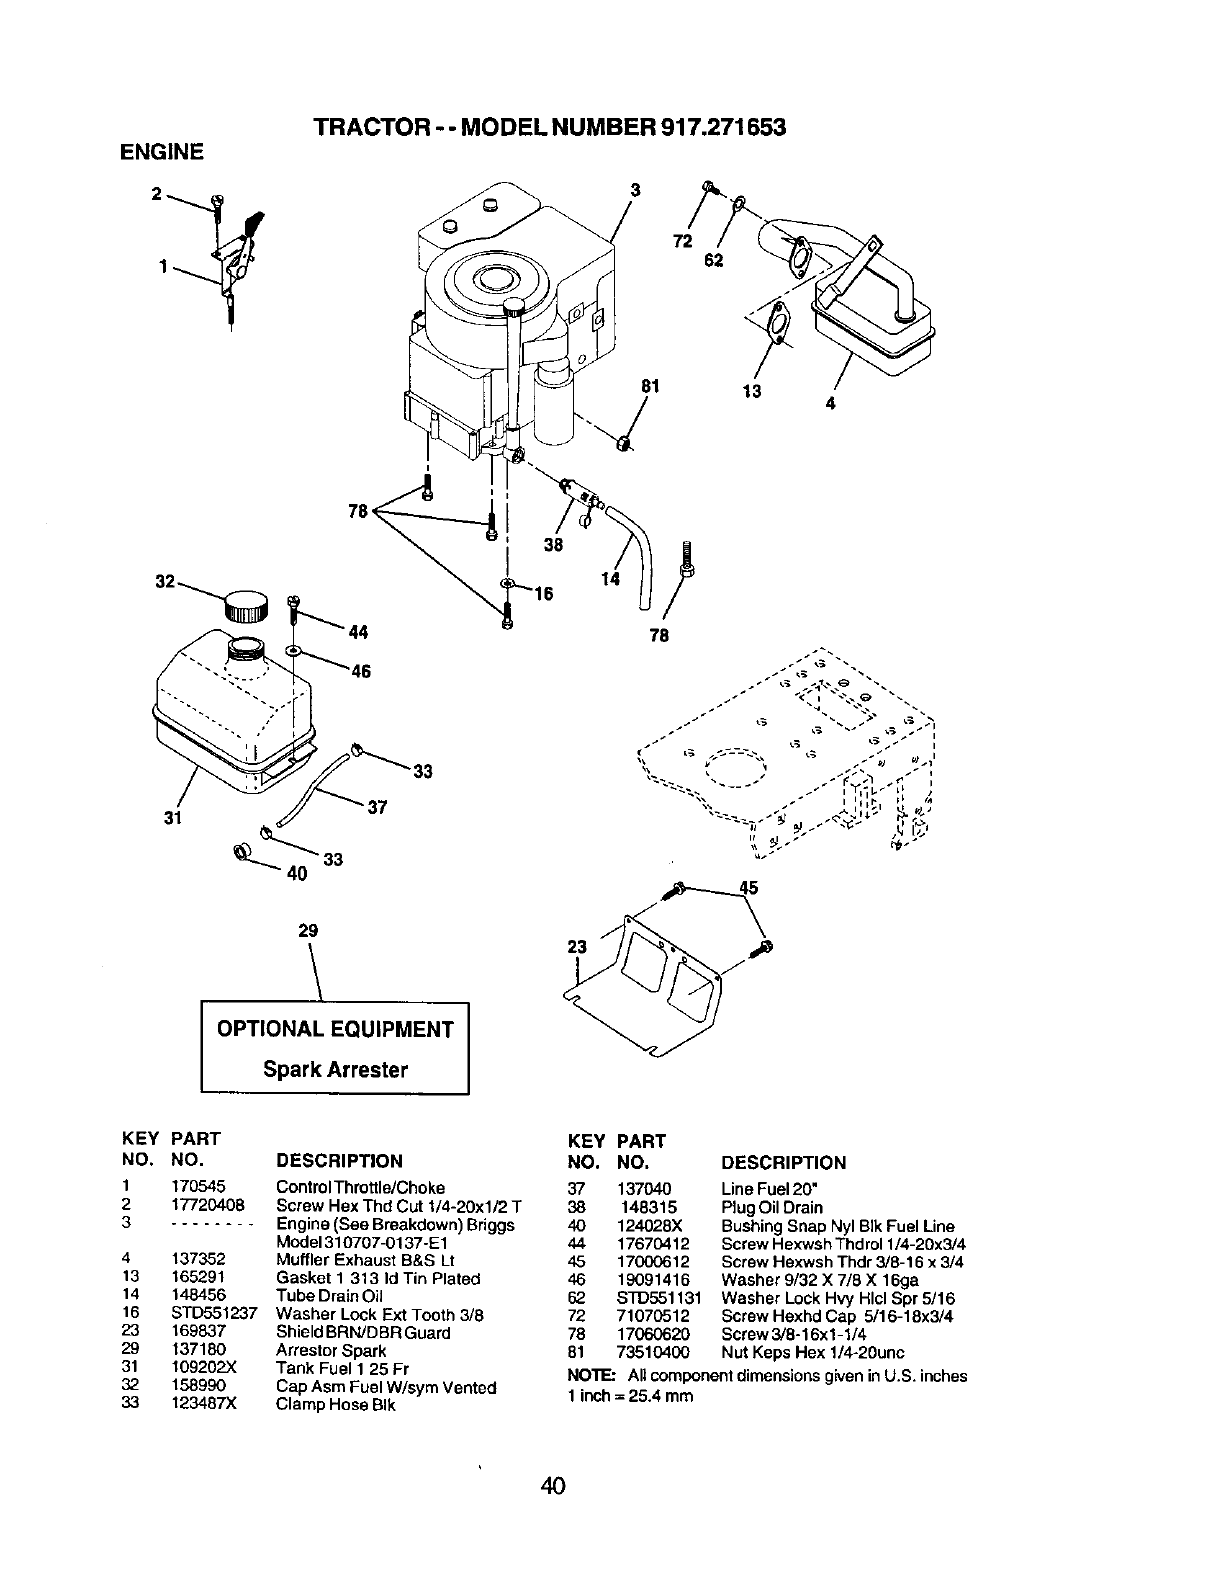 Page 40 of Craftsman Lawn Mower 917.271653 User Guide